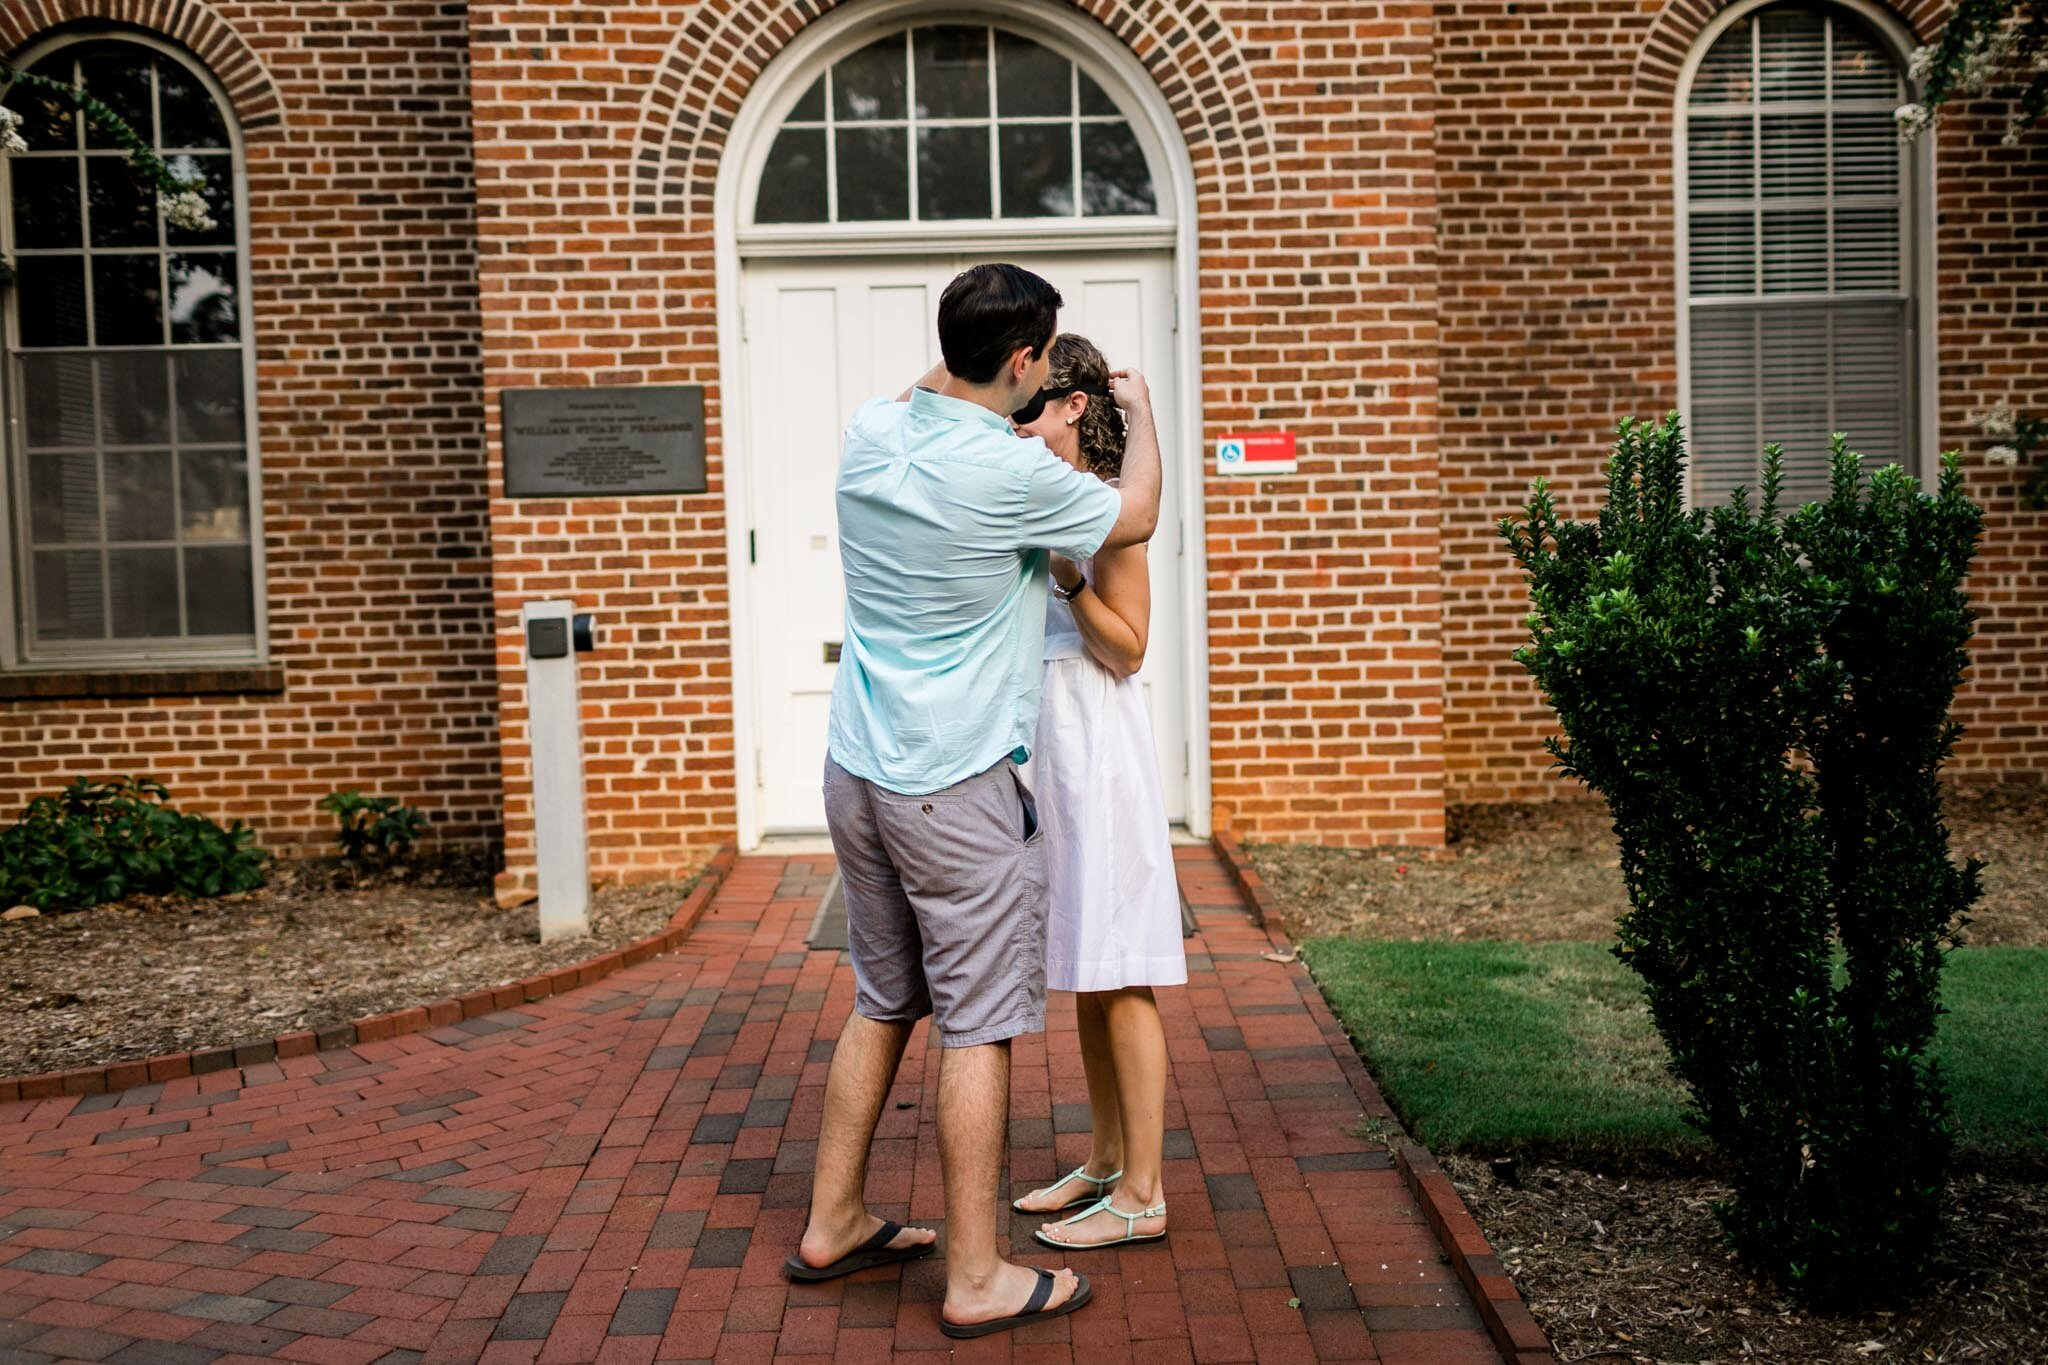 Engagement Photography at NC State | Primrose Hall | By G. Lin Photography | Raleigh Proposal Photographer | Man taking off blindfold from woman